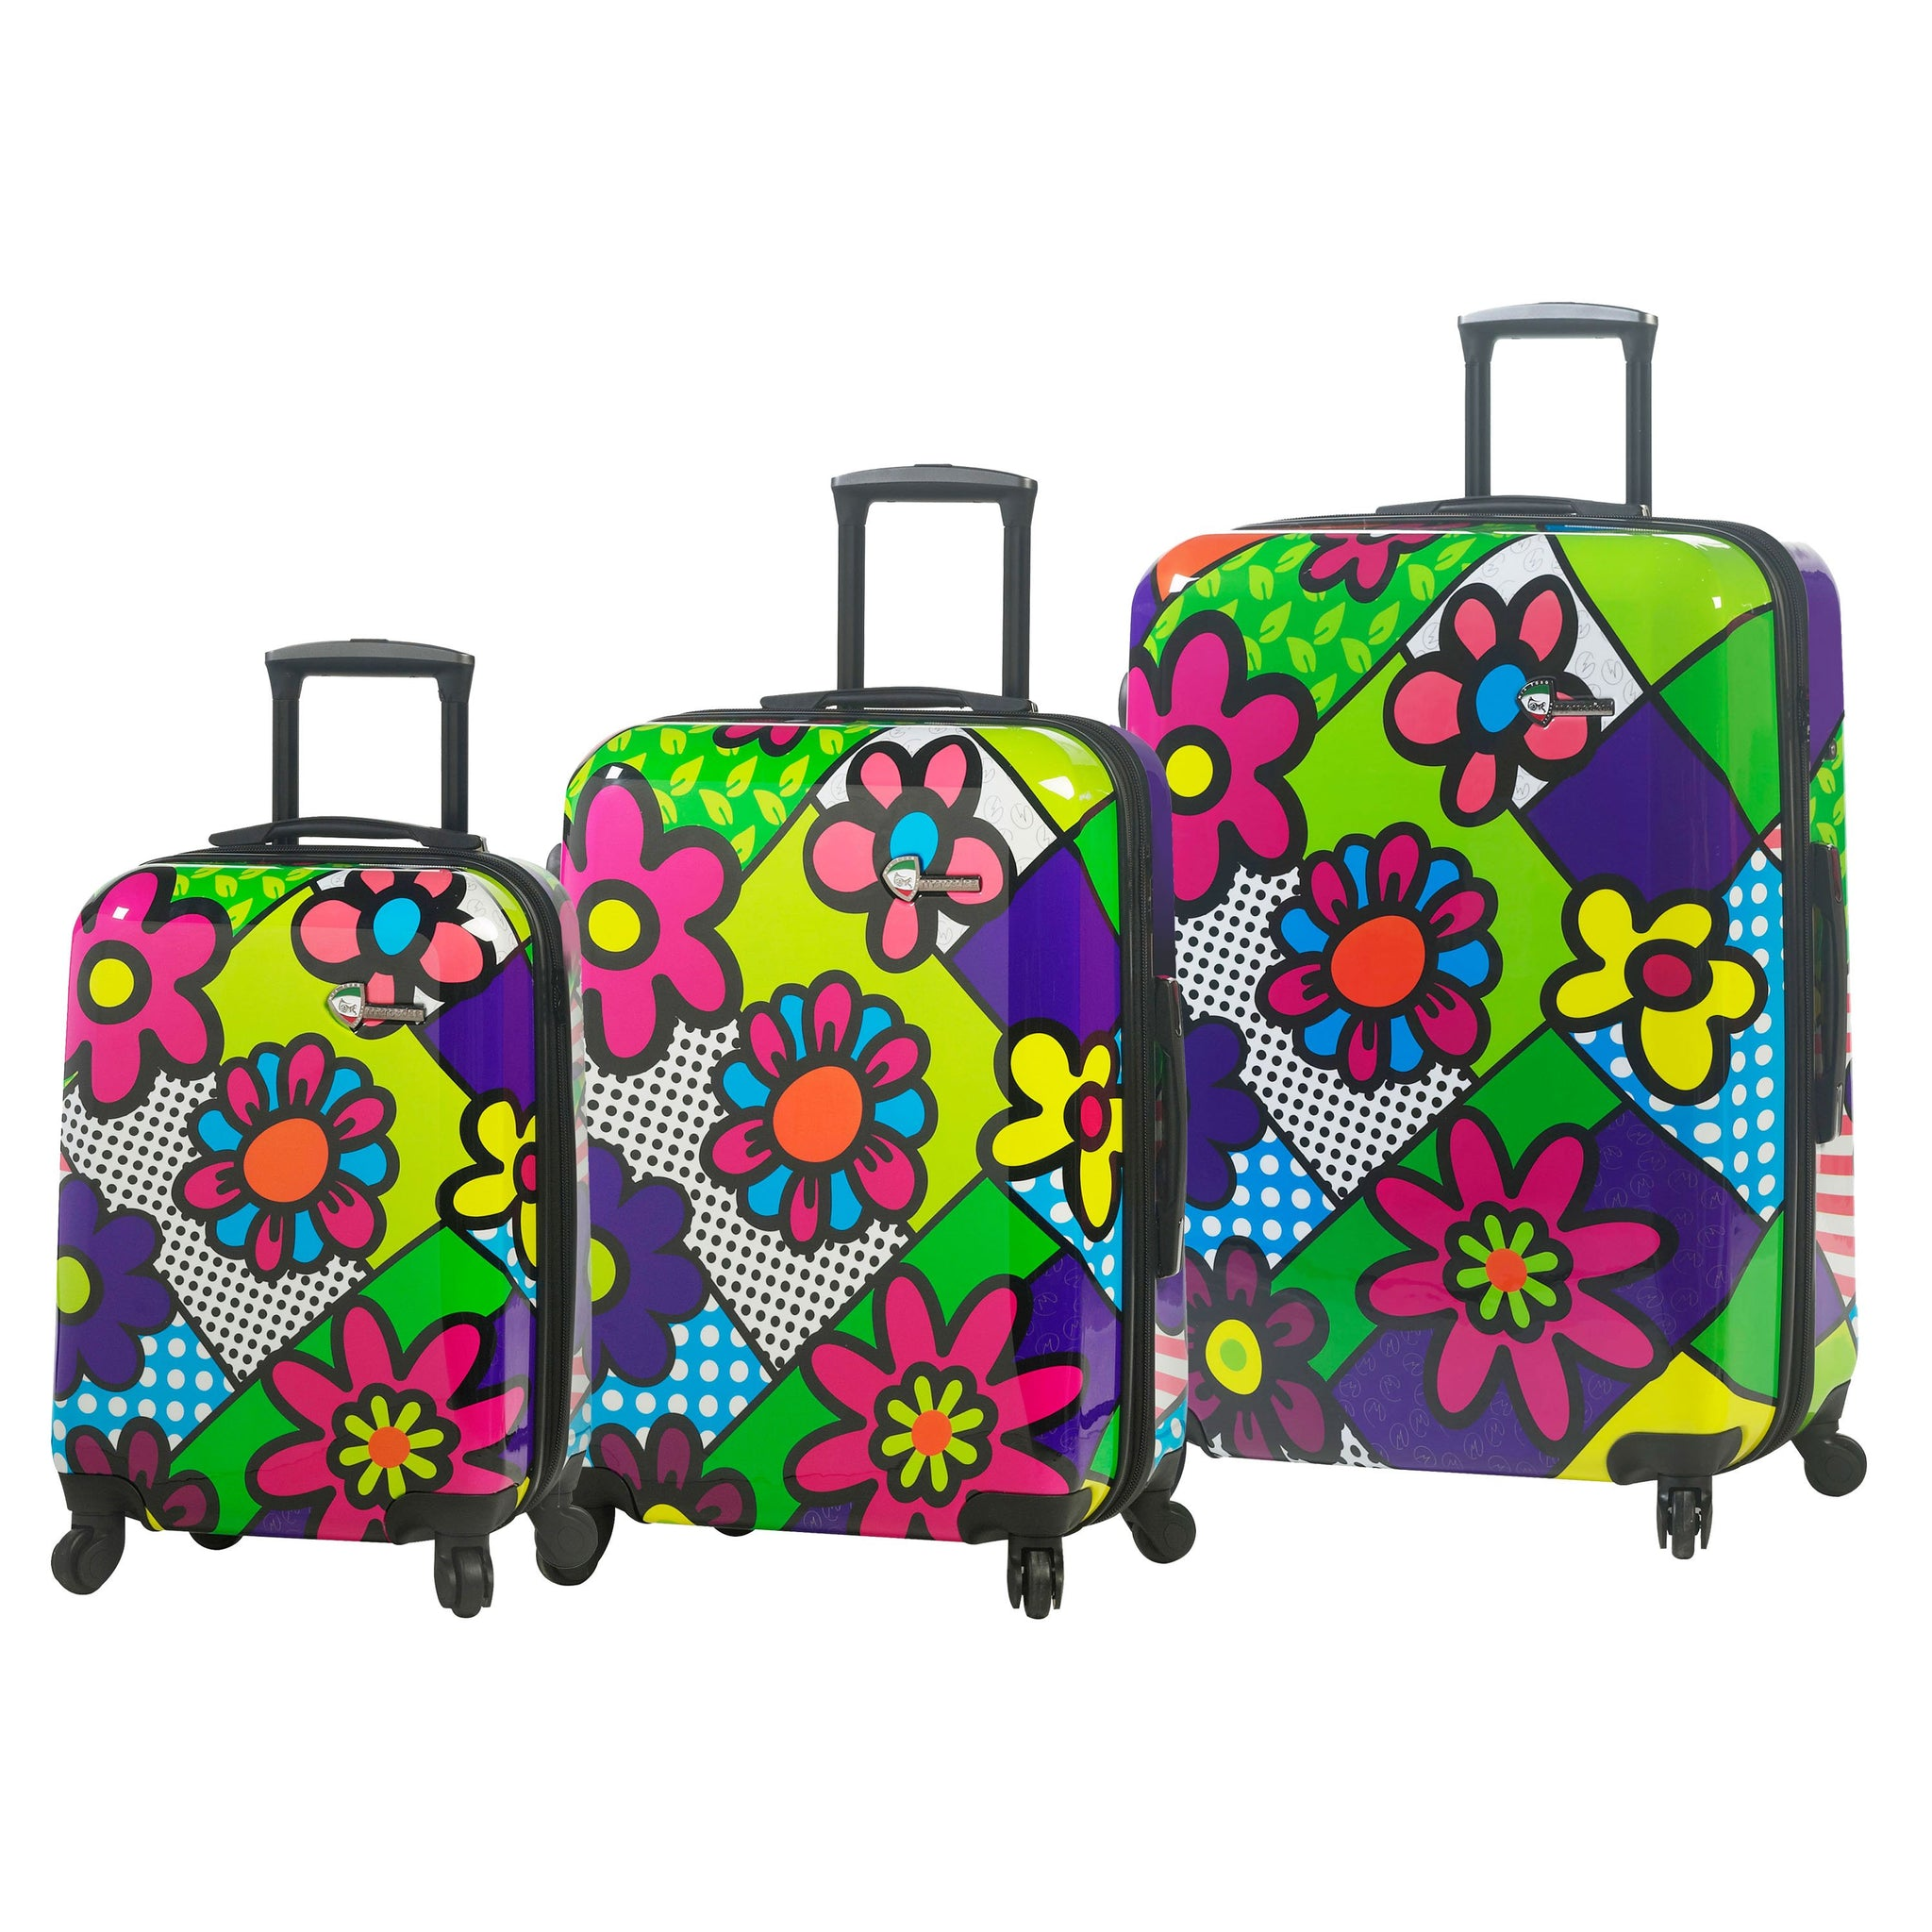 "M by Mia Toro - Flower Hardside 24"" Spinner Luggage Set (3 Pieces)"